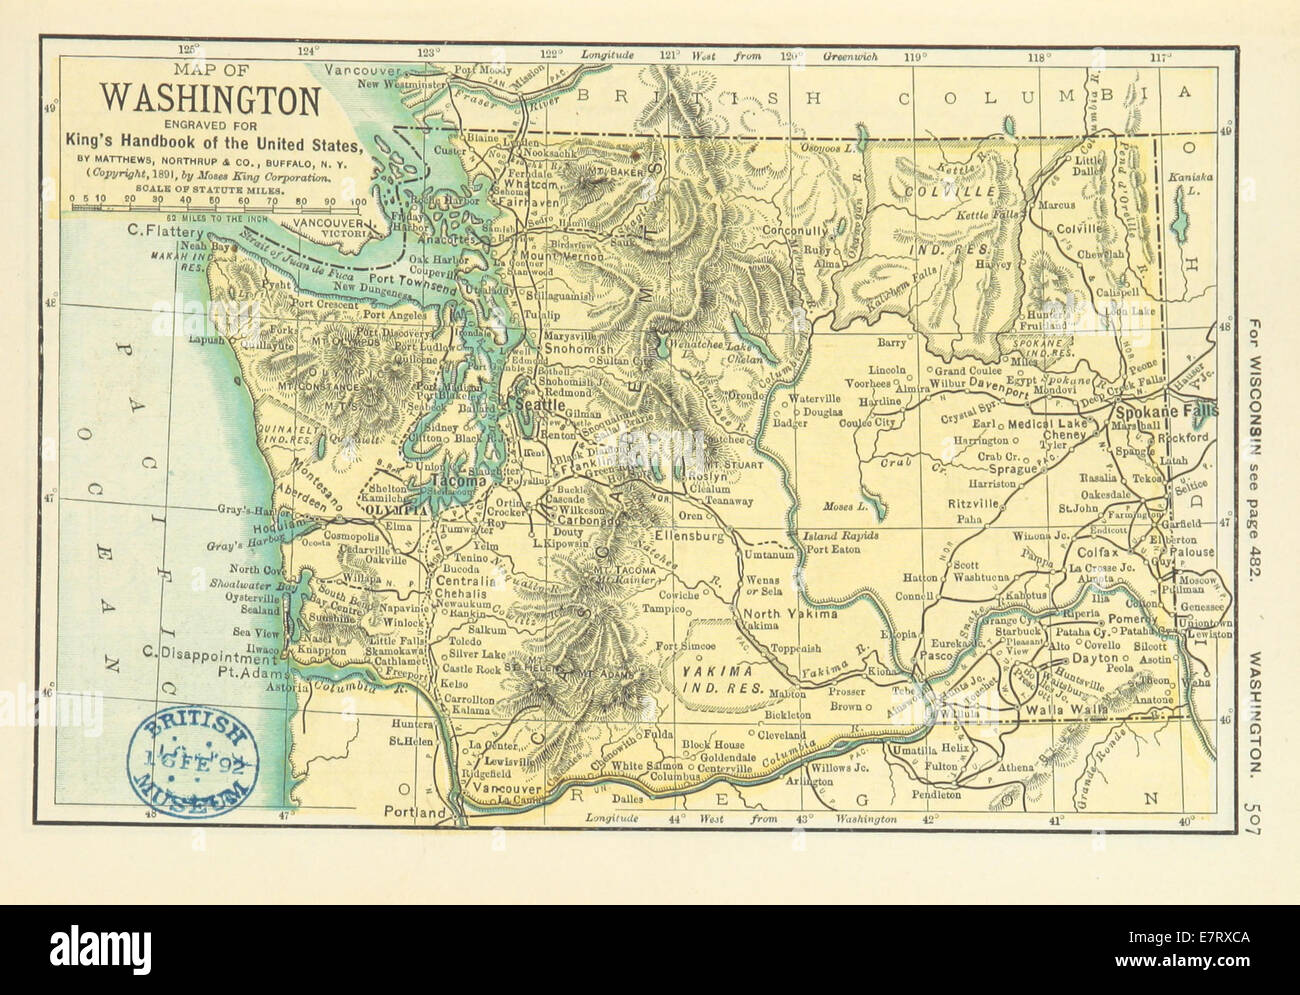 Map Of Washington State Stock Photos   Map Of Washington State Stock     US MAPS 1891  p509   MAP OF WASHINGTON  STATE    Stock